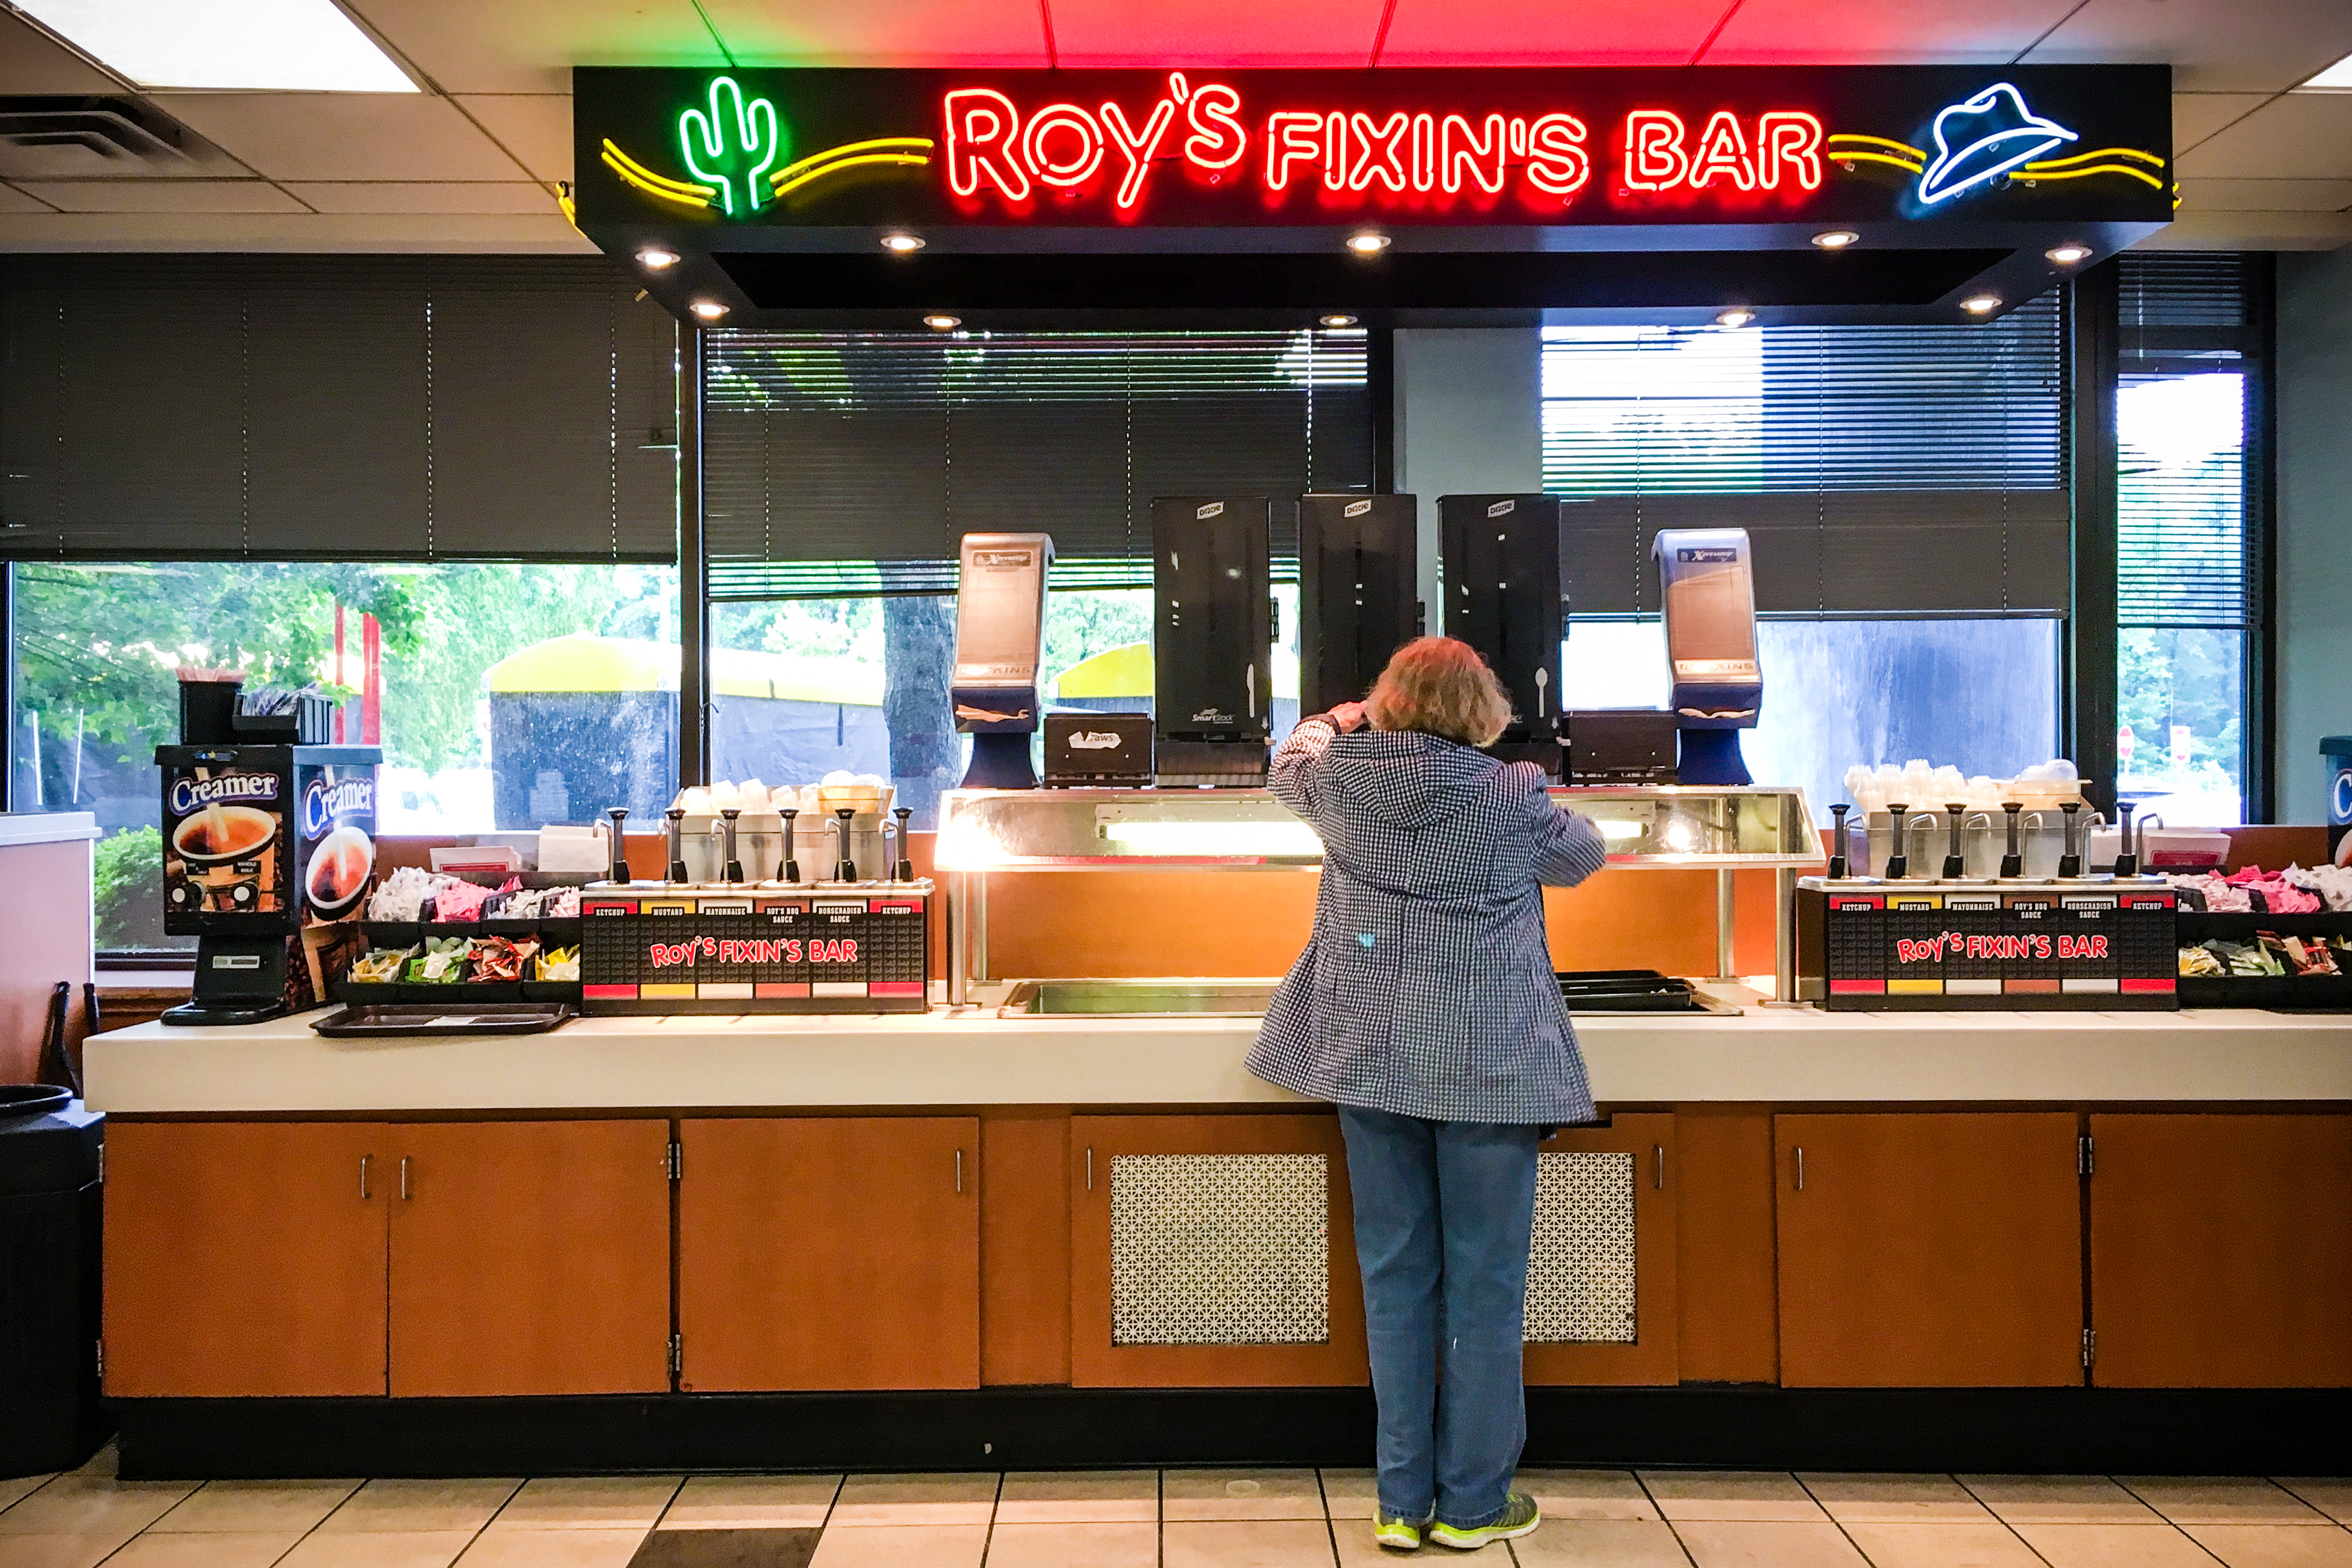 A woman serves herself at a Roy's Fixin's Bar at a rest area on the New Jersey Turnpike